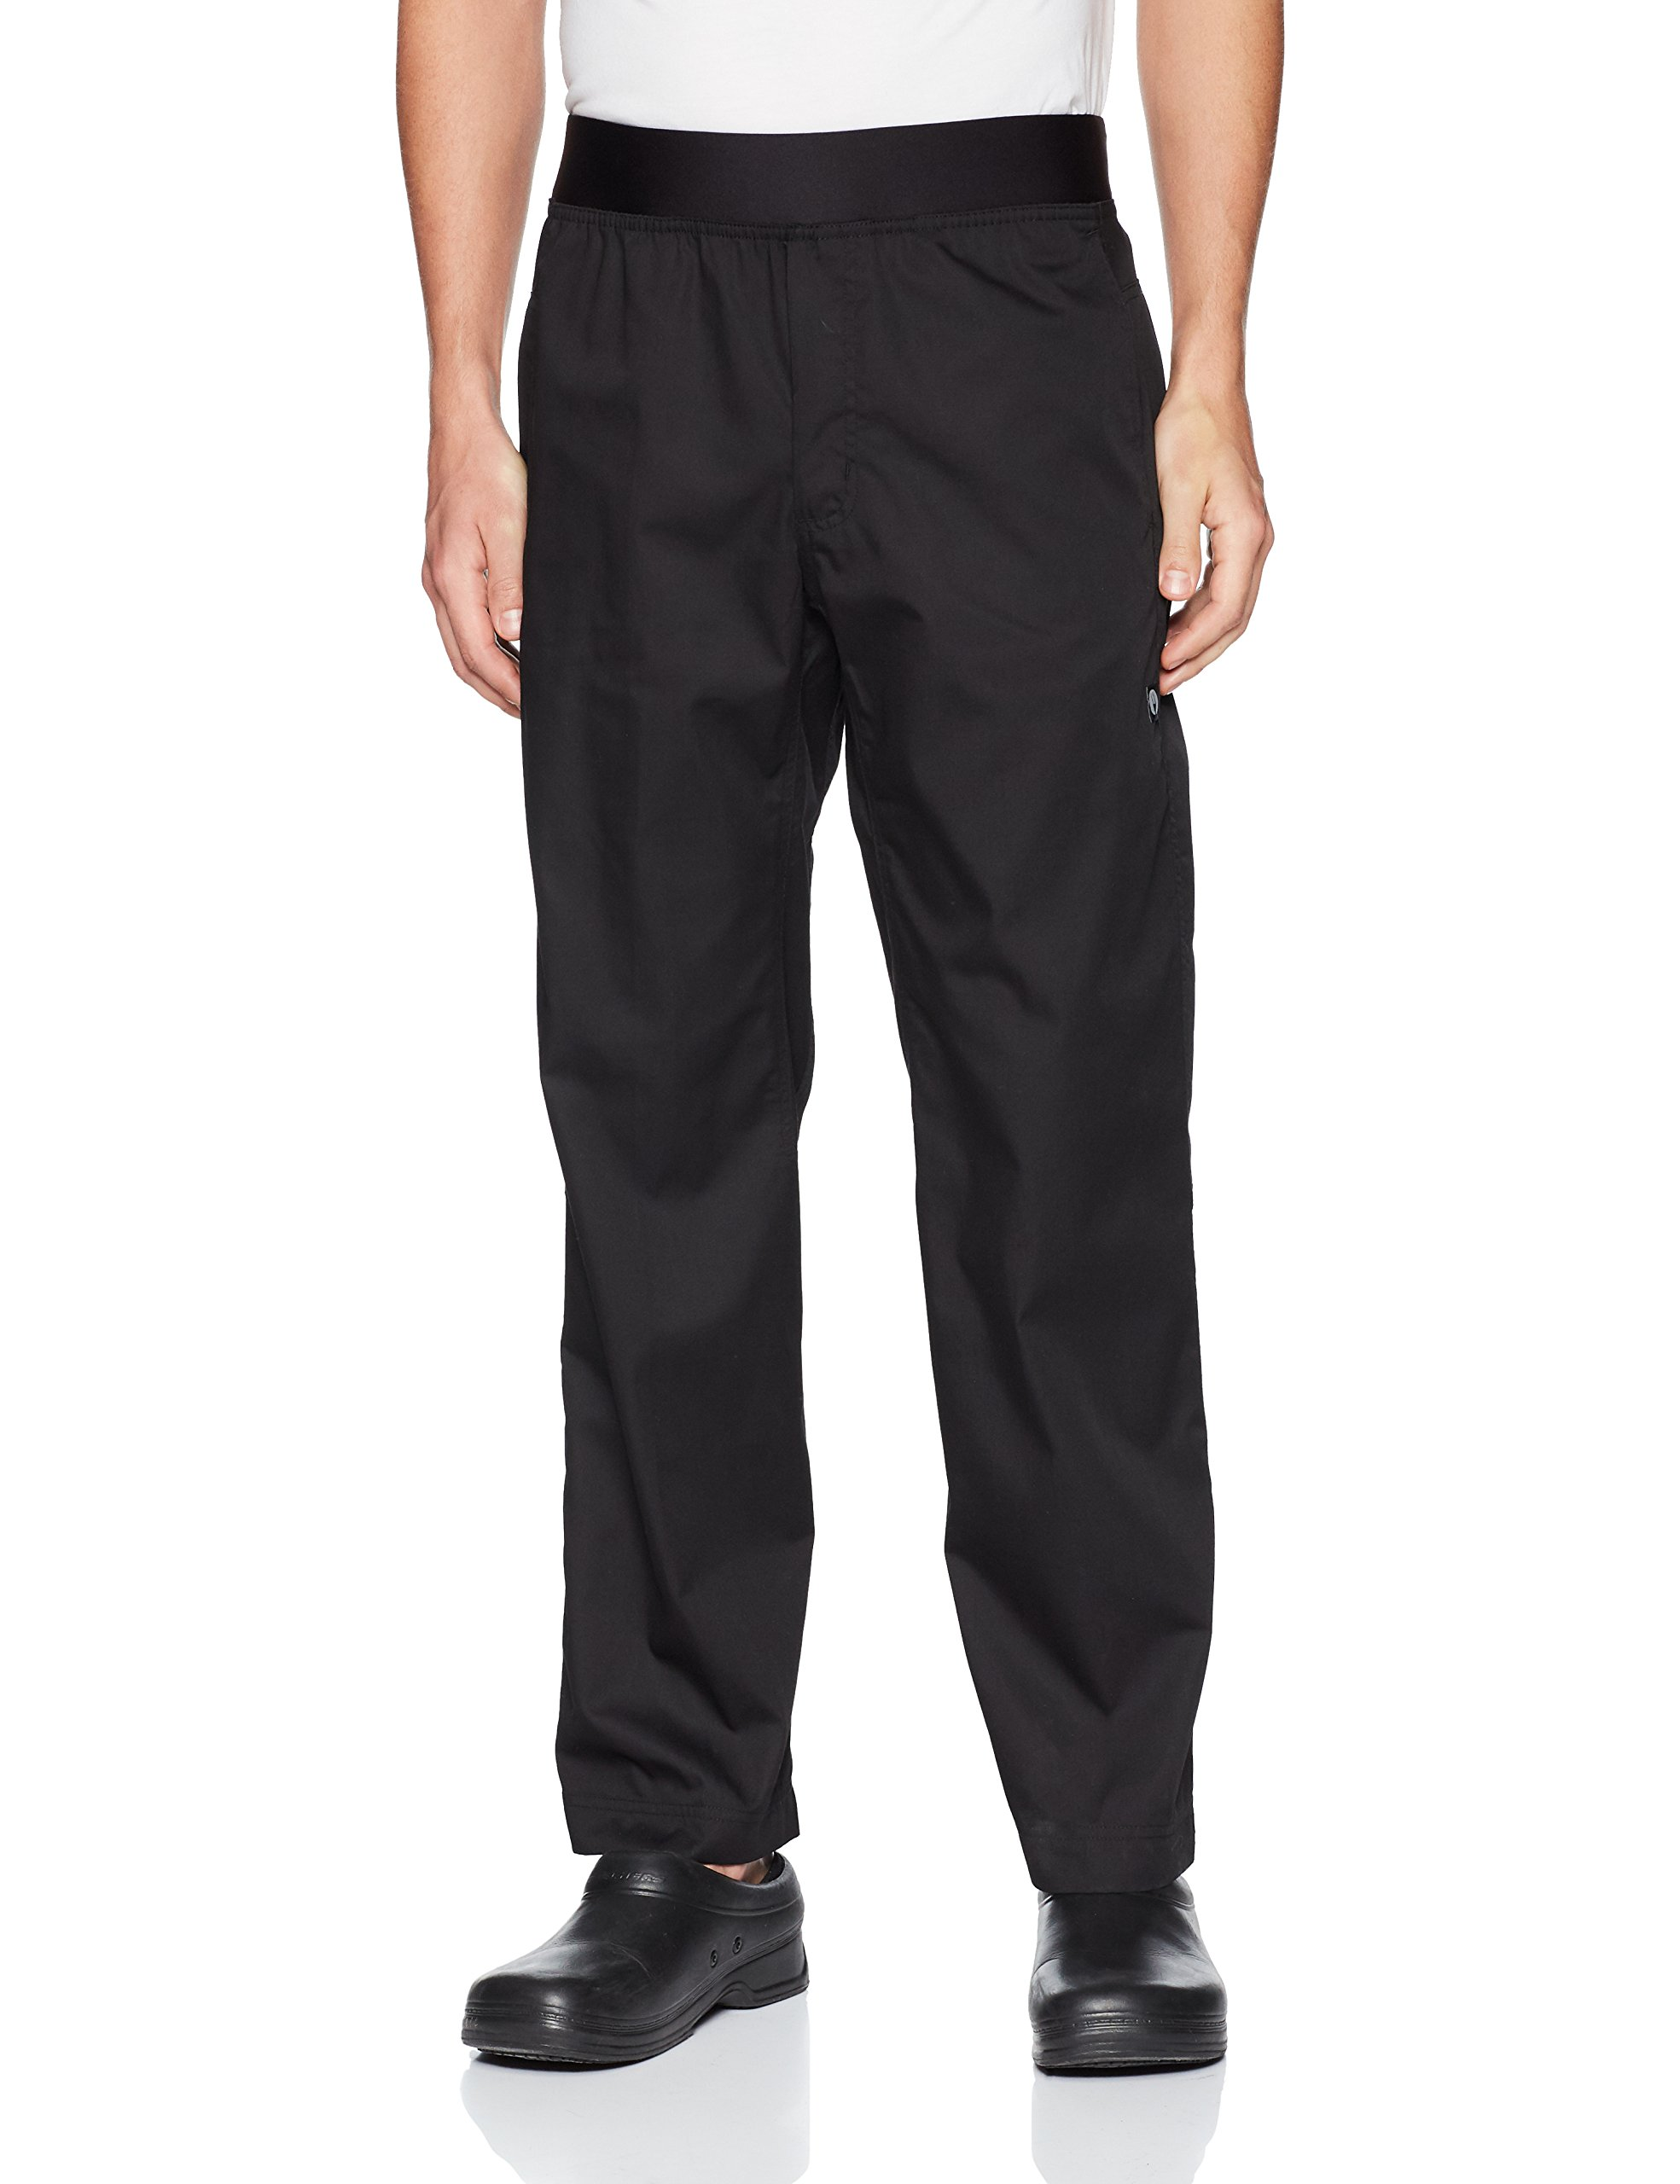 Chef Works Men's Lightweight Slim Pant, Black, Medium by Chef Works